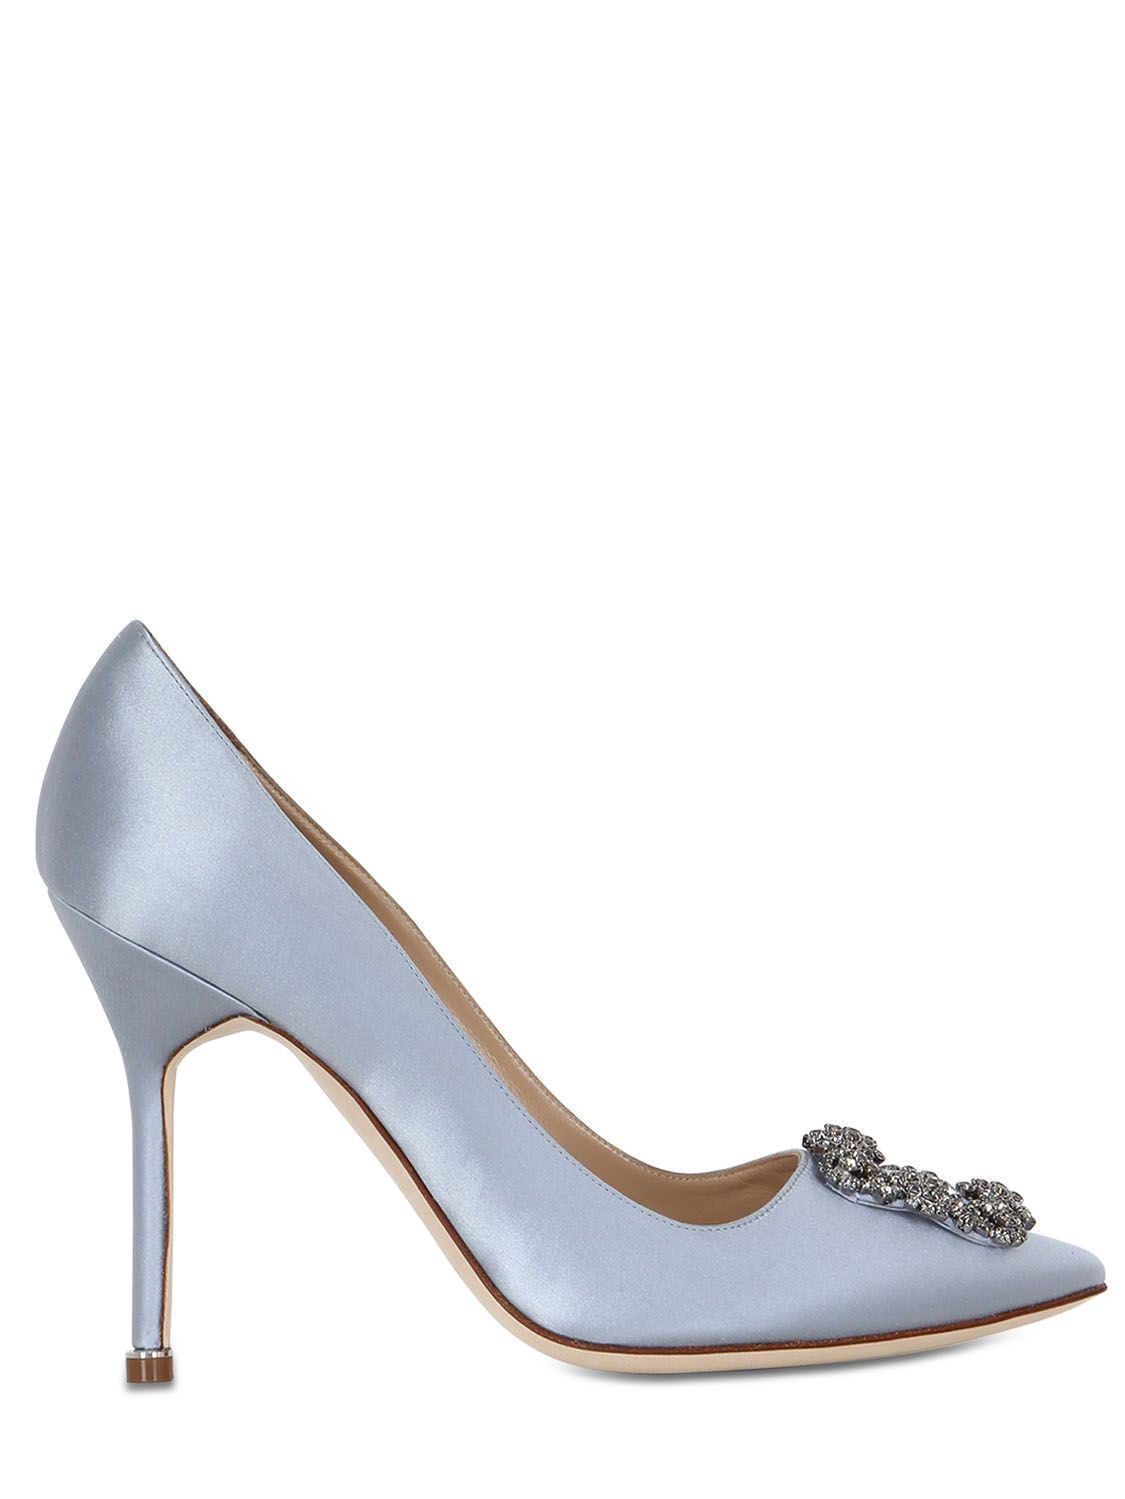 d35c607279b1 MANOLO BLAHNIK 105MM HANGISI SWAROVSKI SILK SATIN PUMPS.  manoloblahnik   shoes    manoloblahnikheelsproducts